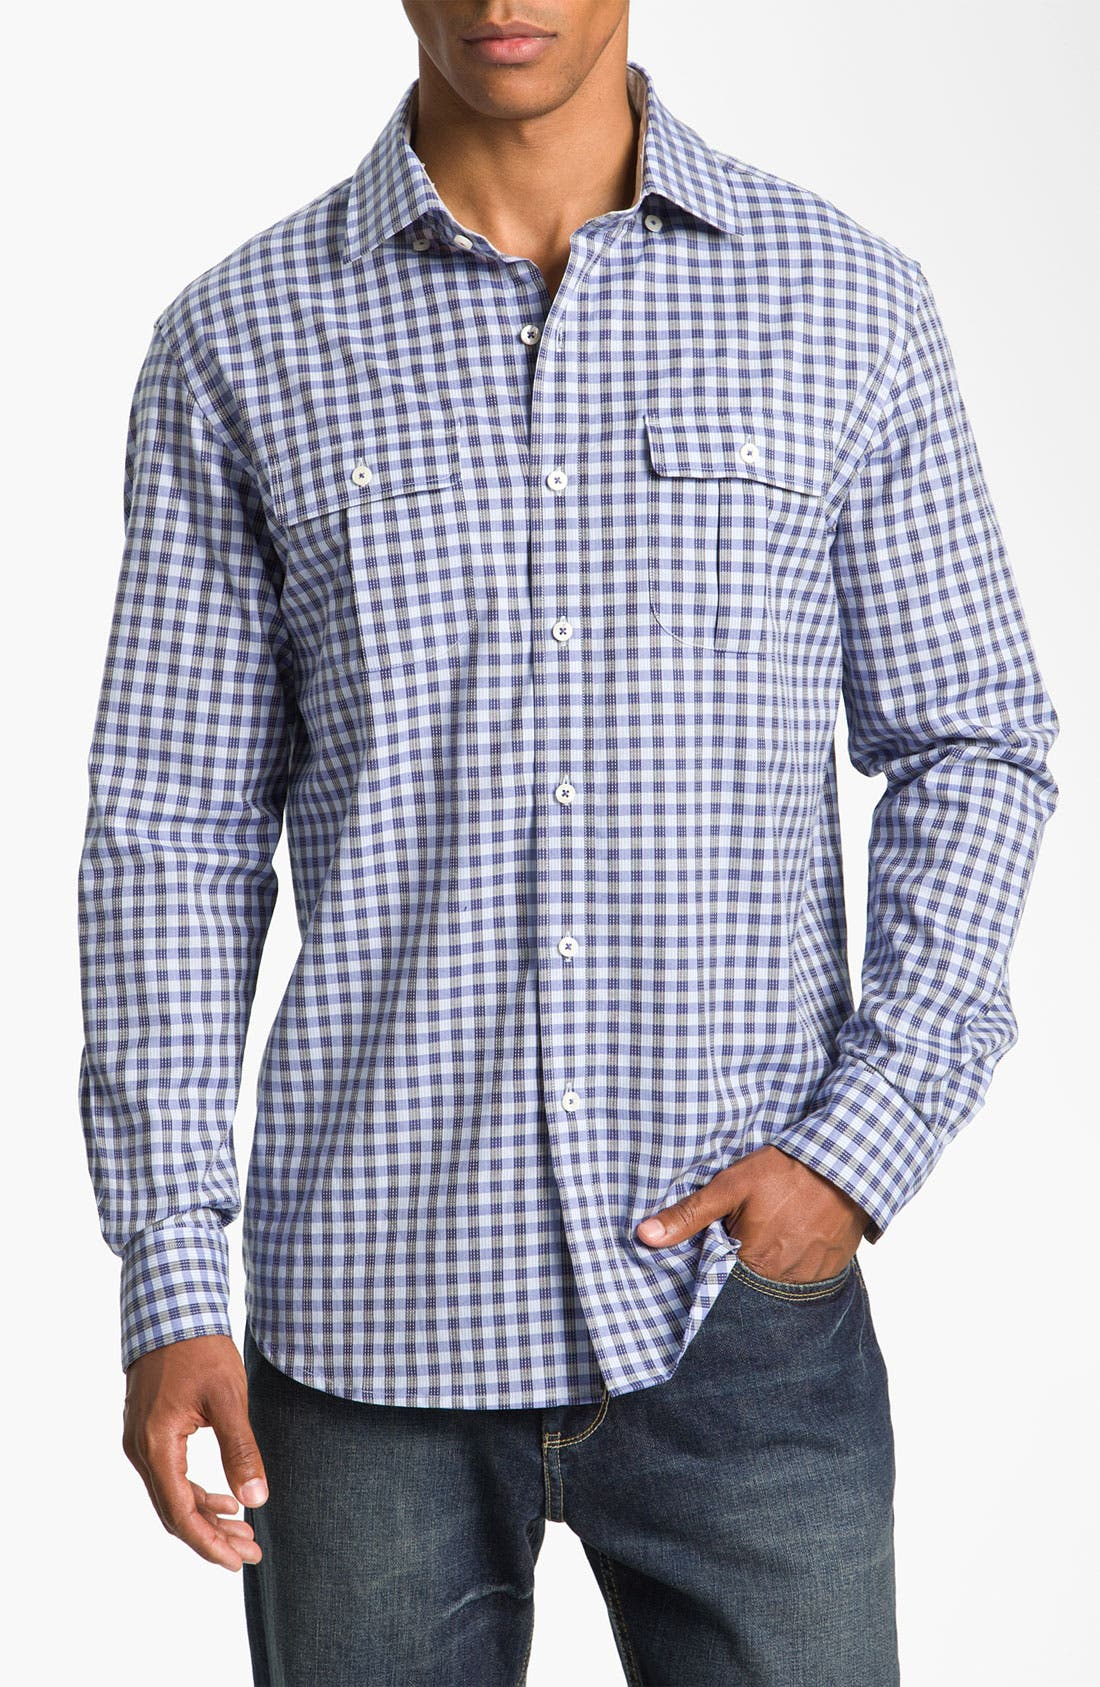 Alternate Image 1 Selected - Tommy Bahama 'Waterway' Sport Shirt